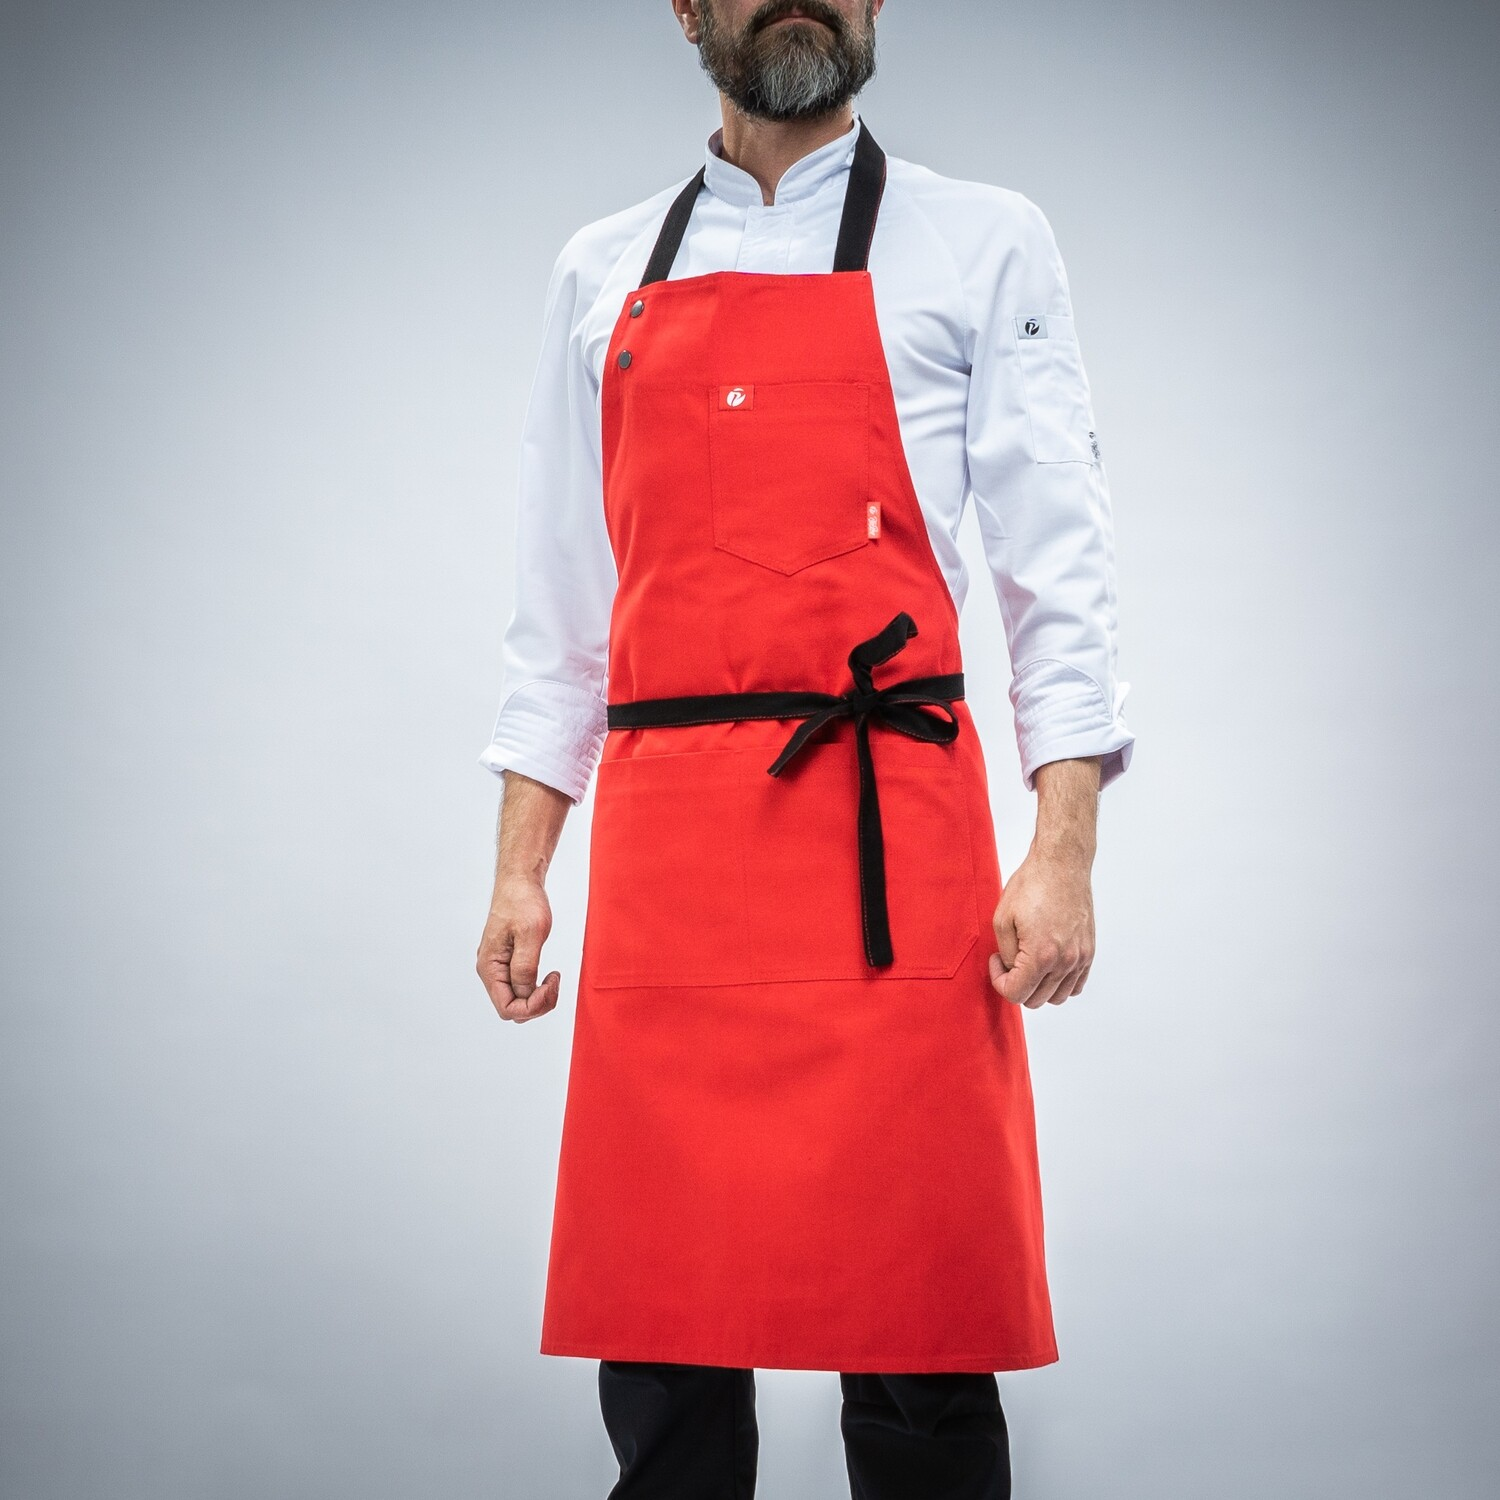 FN1CRED - APRON